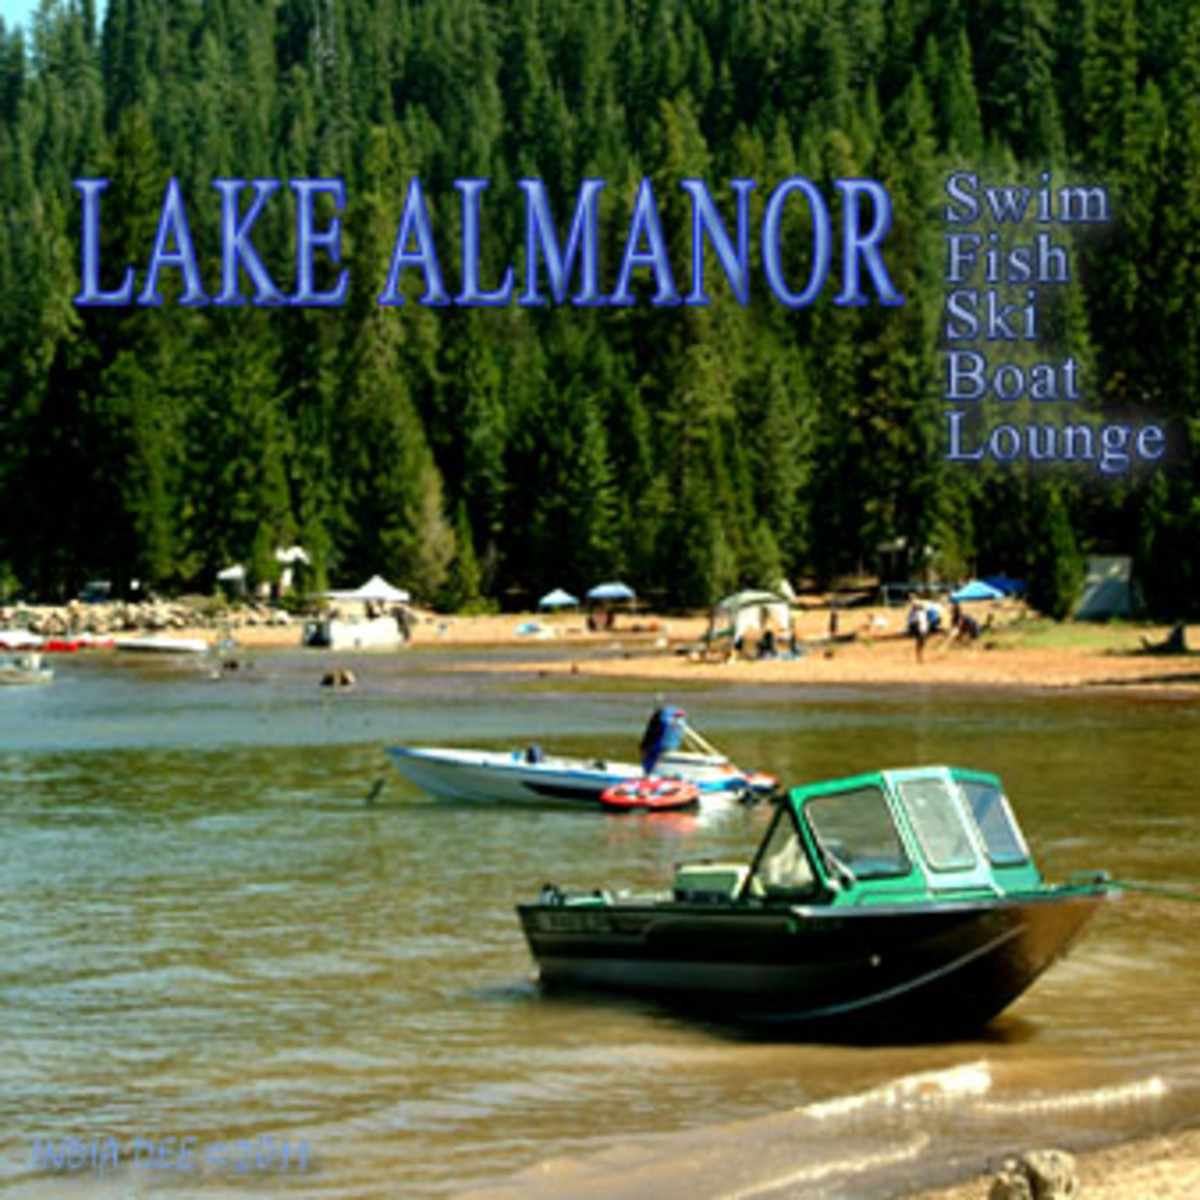 Lake Almanor is the perfect family water vacation!